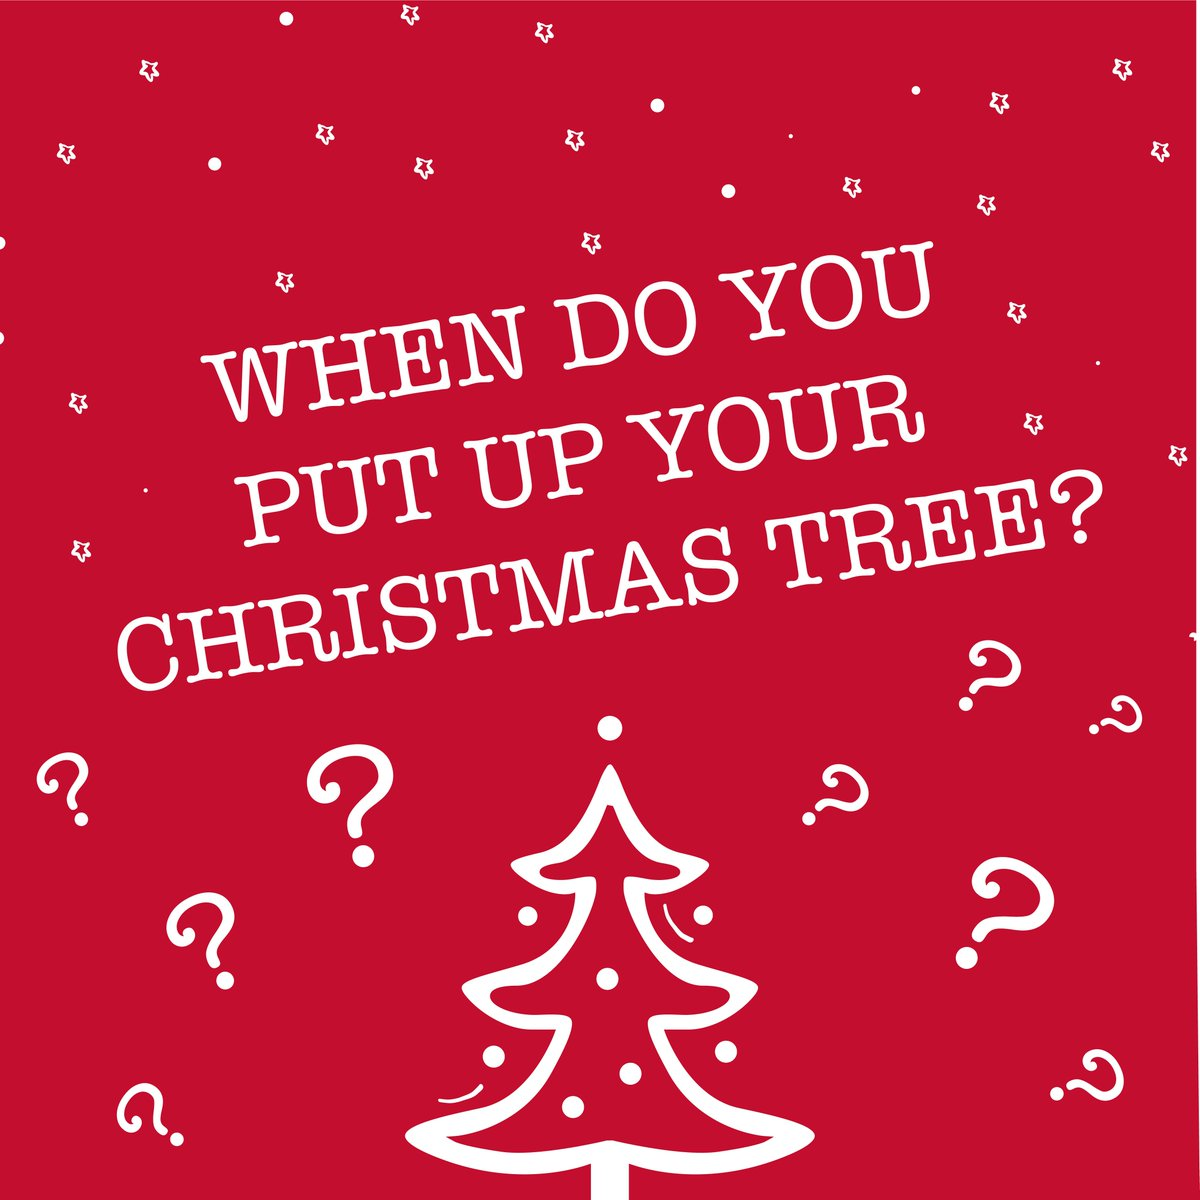 poundworld on twitter were seeing pictures of peoples homes with the christmas tree up what do you think far too early when do you put up your - When Should You Put Up Your Christmas Tree